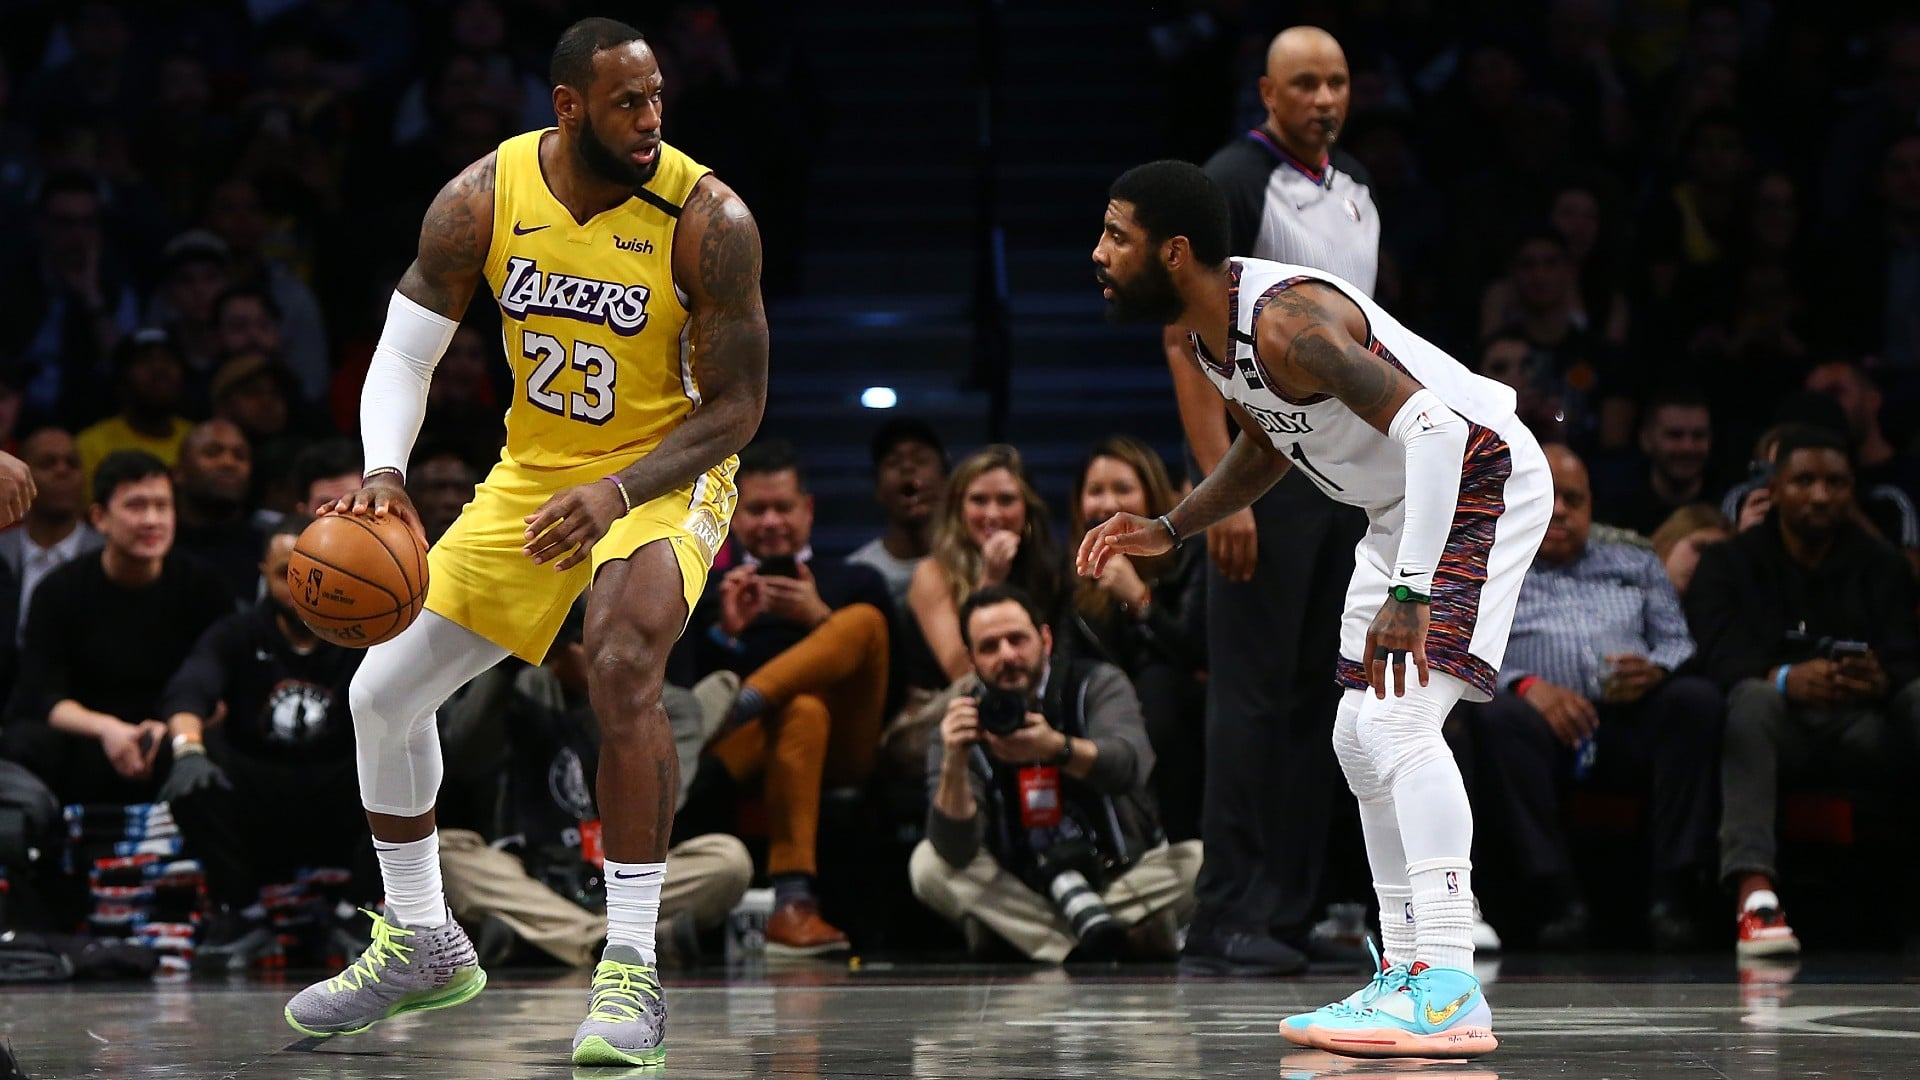 ground-microphones-take-nets-kyrie-irving-trolling-lakers-lebron-james-after-neglected-free-throw.jpg